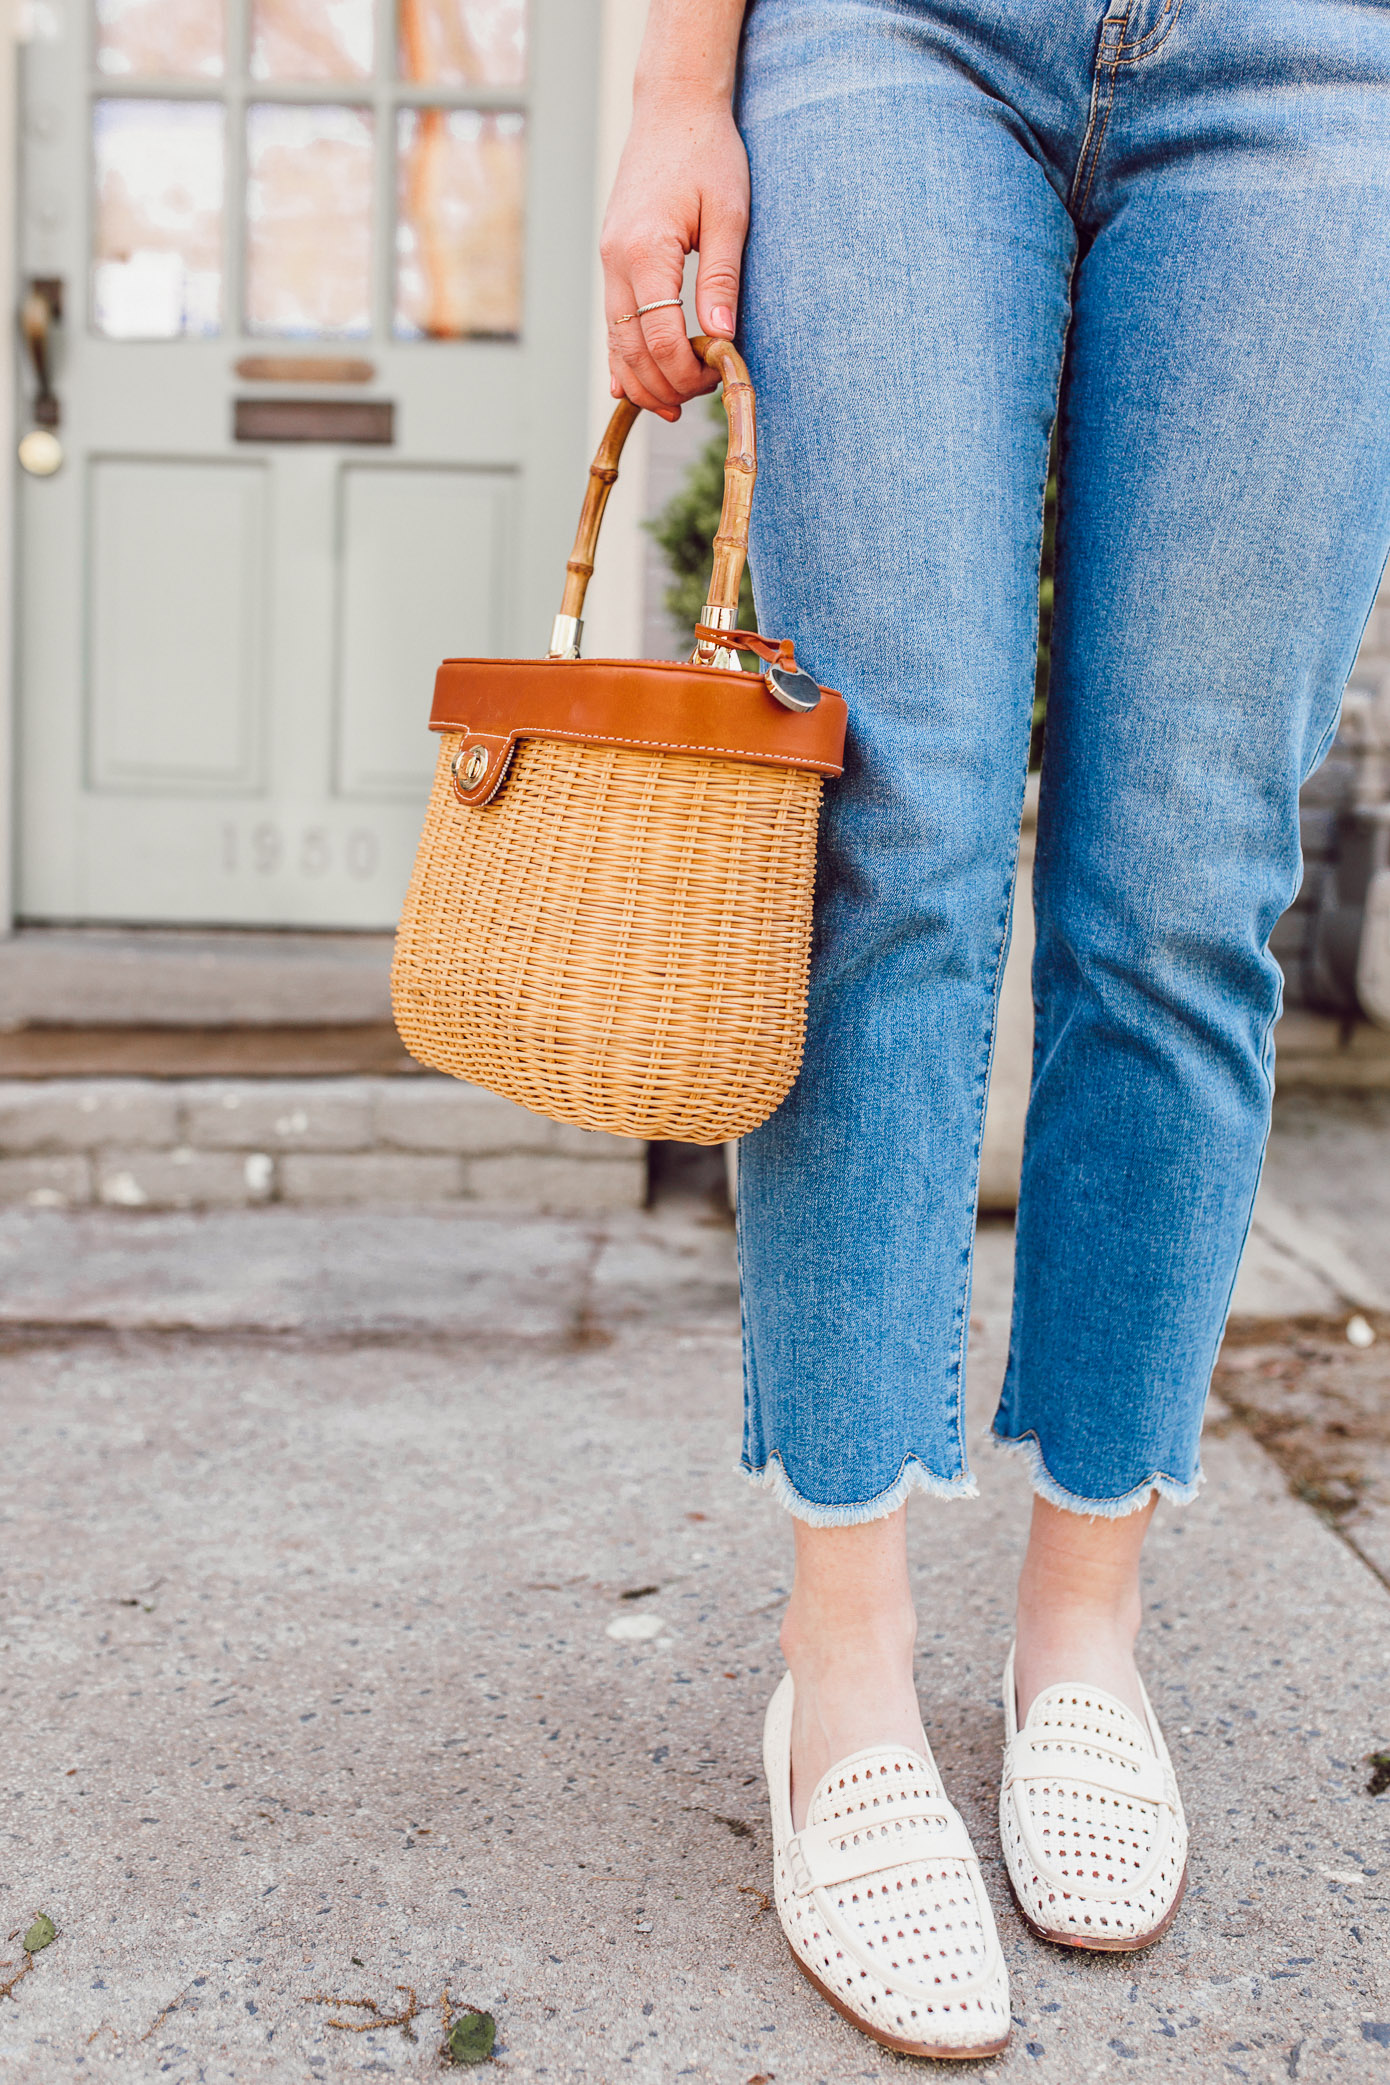 Scalloped Hem Jeans | Jeans for Spring 2019 | Louella Reese